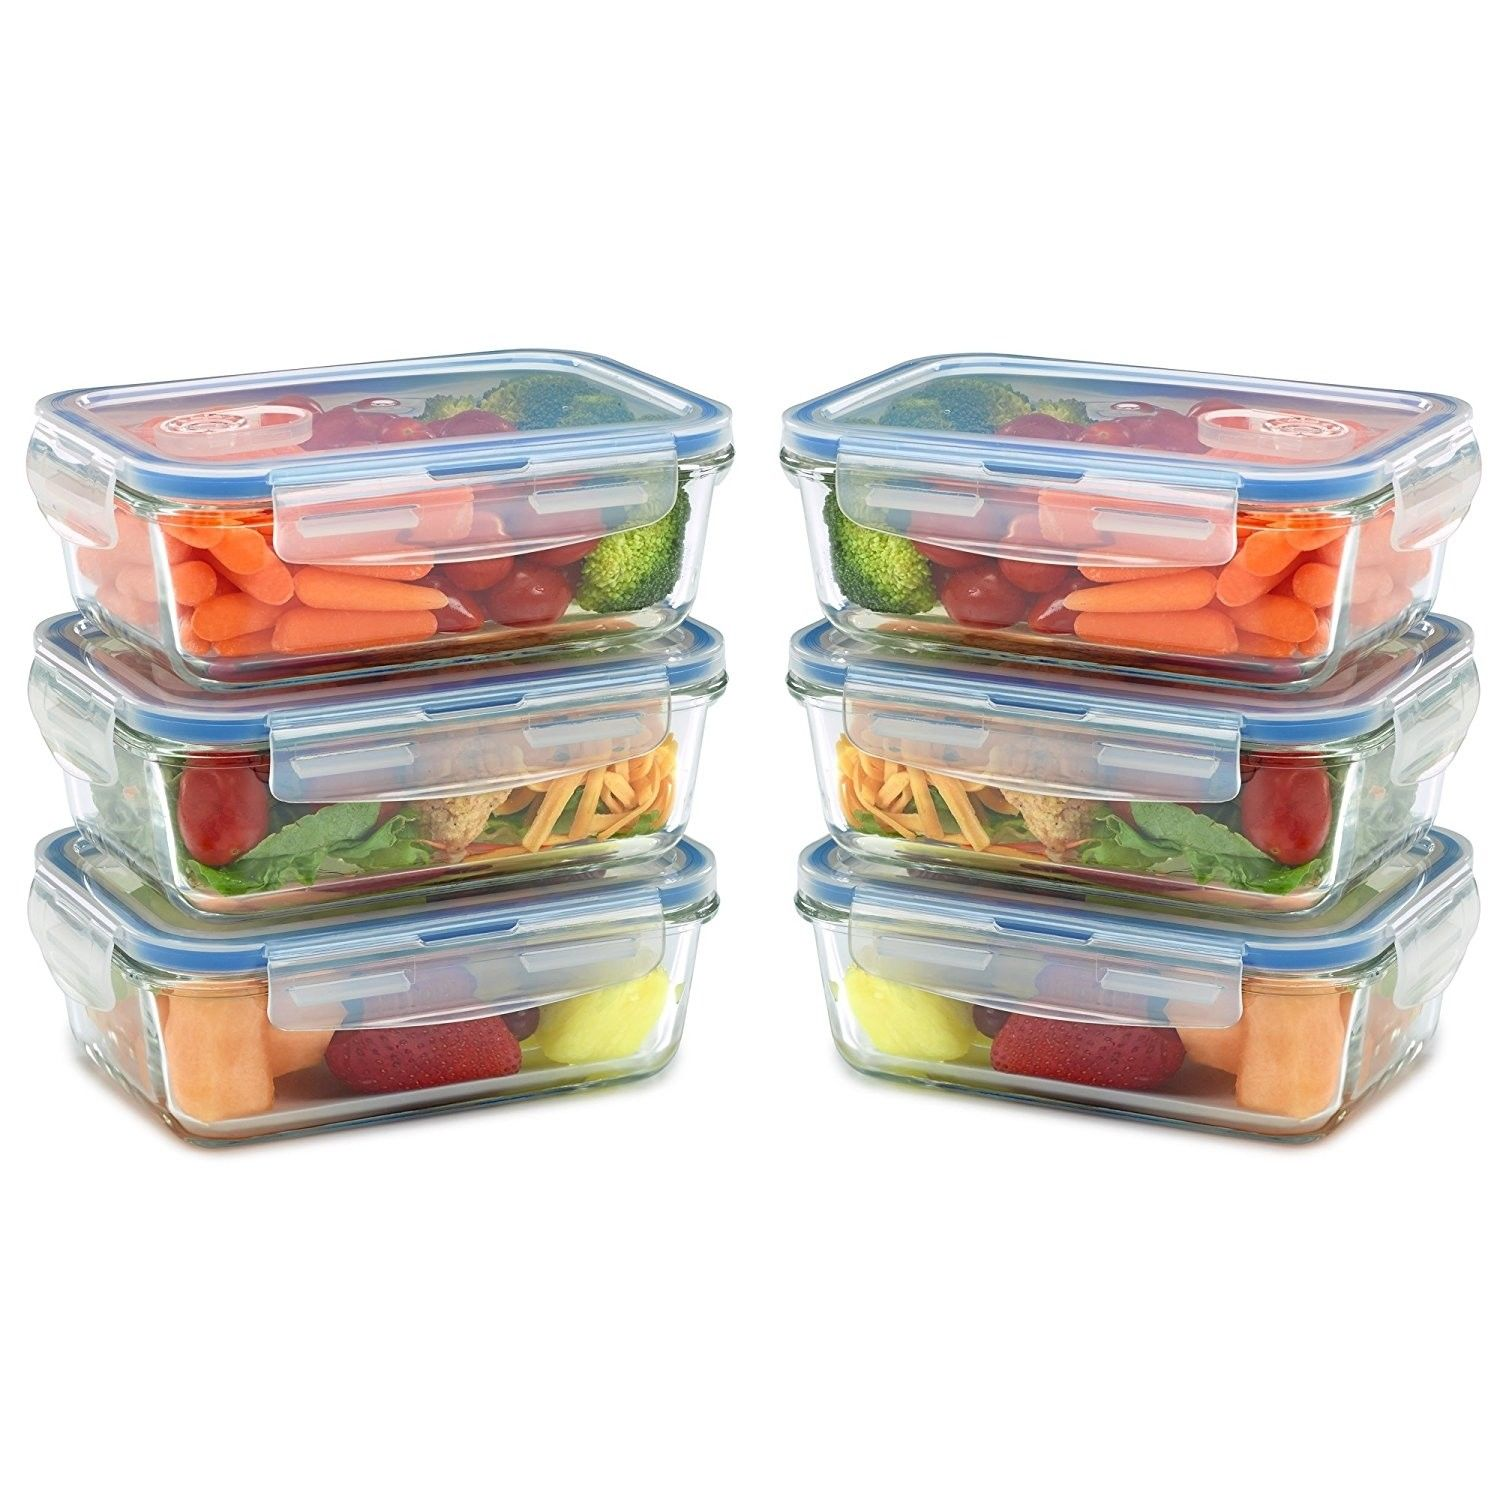 [6 Pack] Glass Meal Prep Containers for Food Storage and Prep w/ Snap Locking... 1